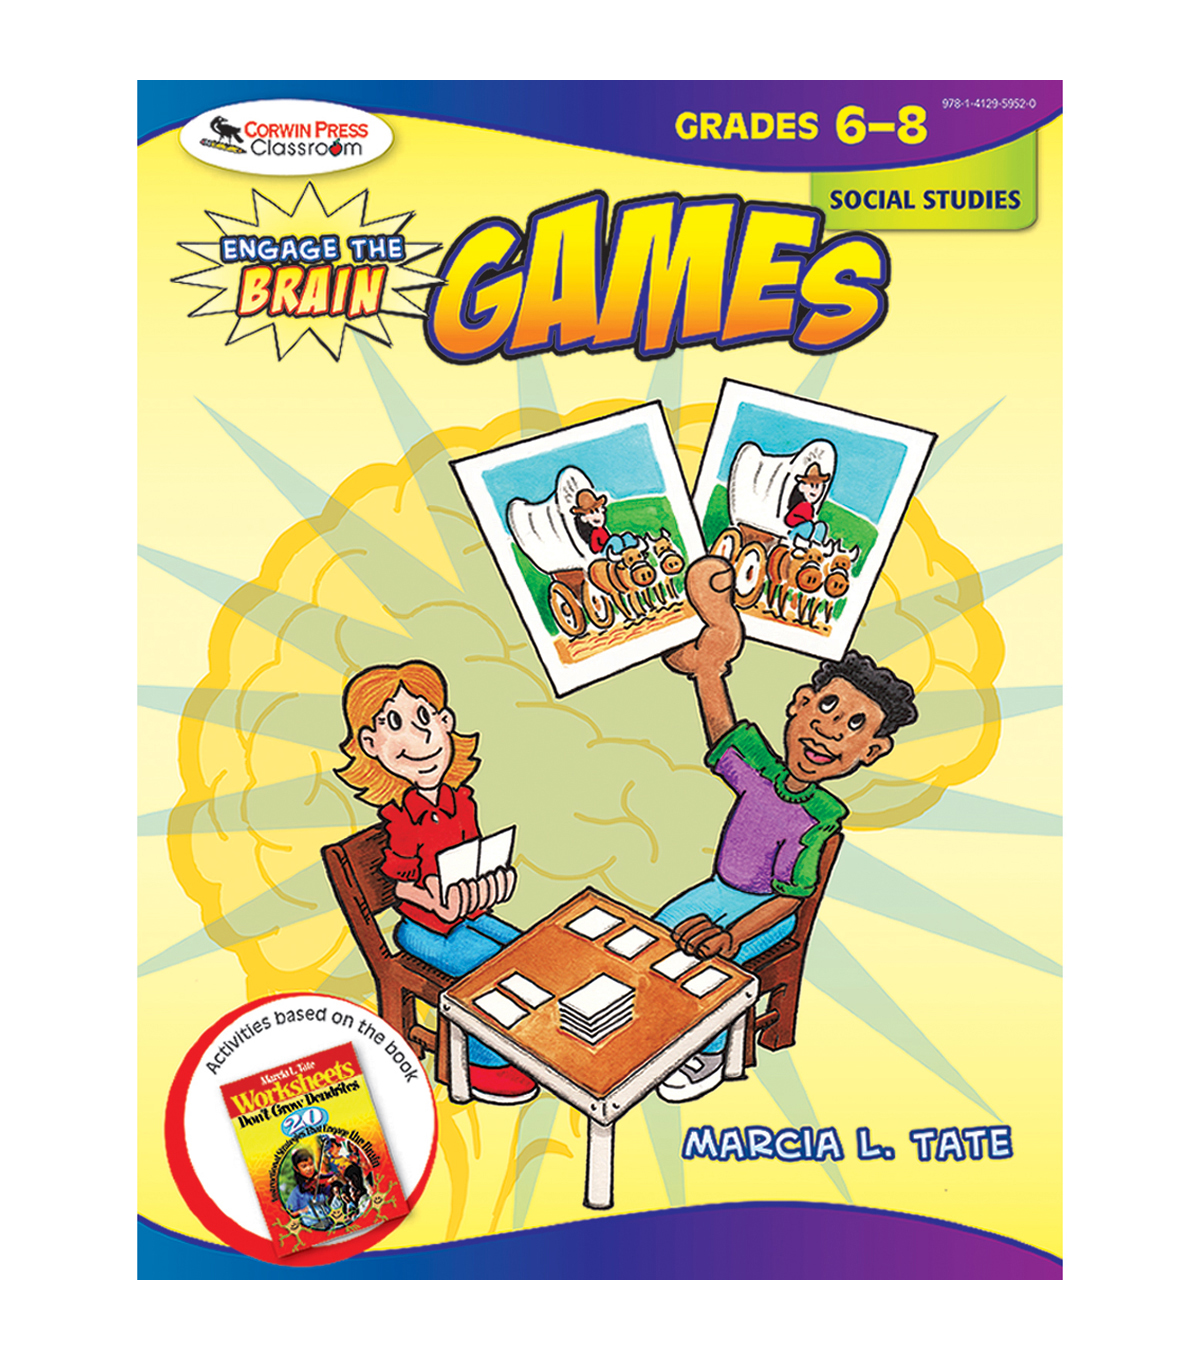 Corwin Press Engage the Brain: Games, Social Studies, Grades 6-8